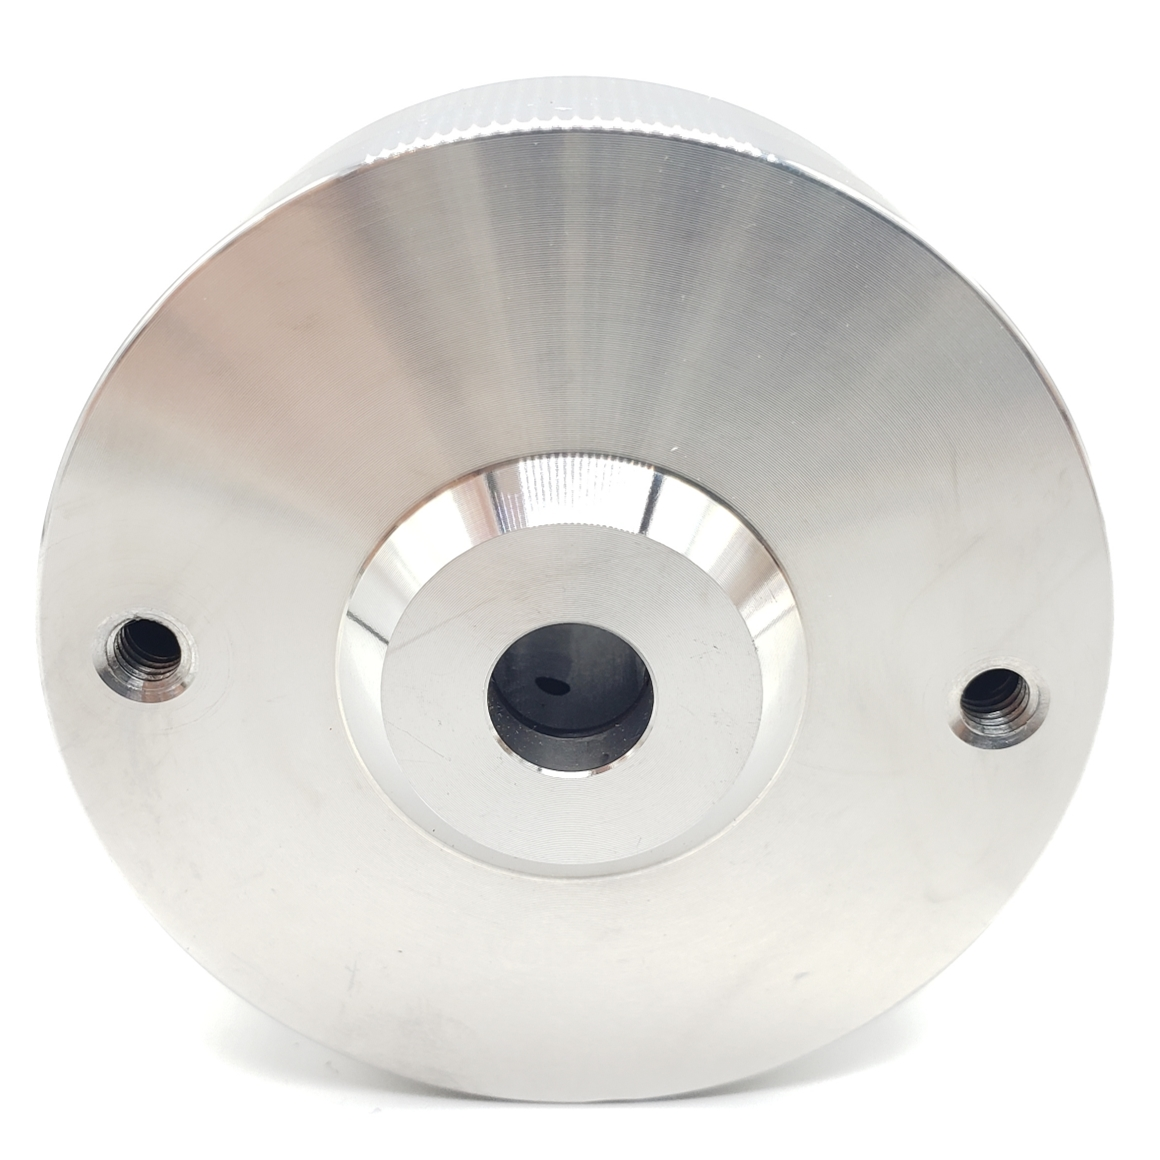 WHP waterjet parts replaces 308144 waterjet high pressure end cap is worth trying